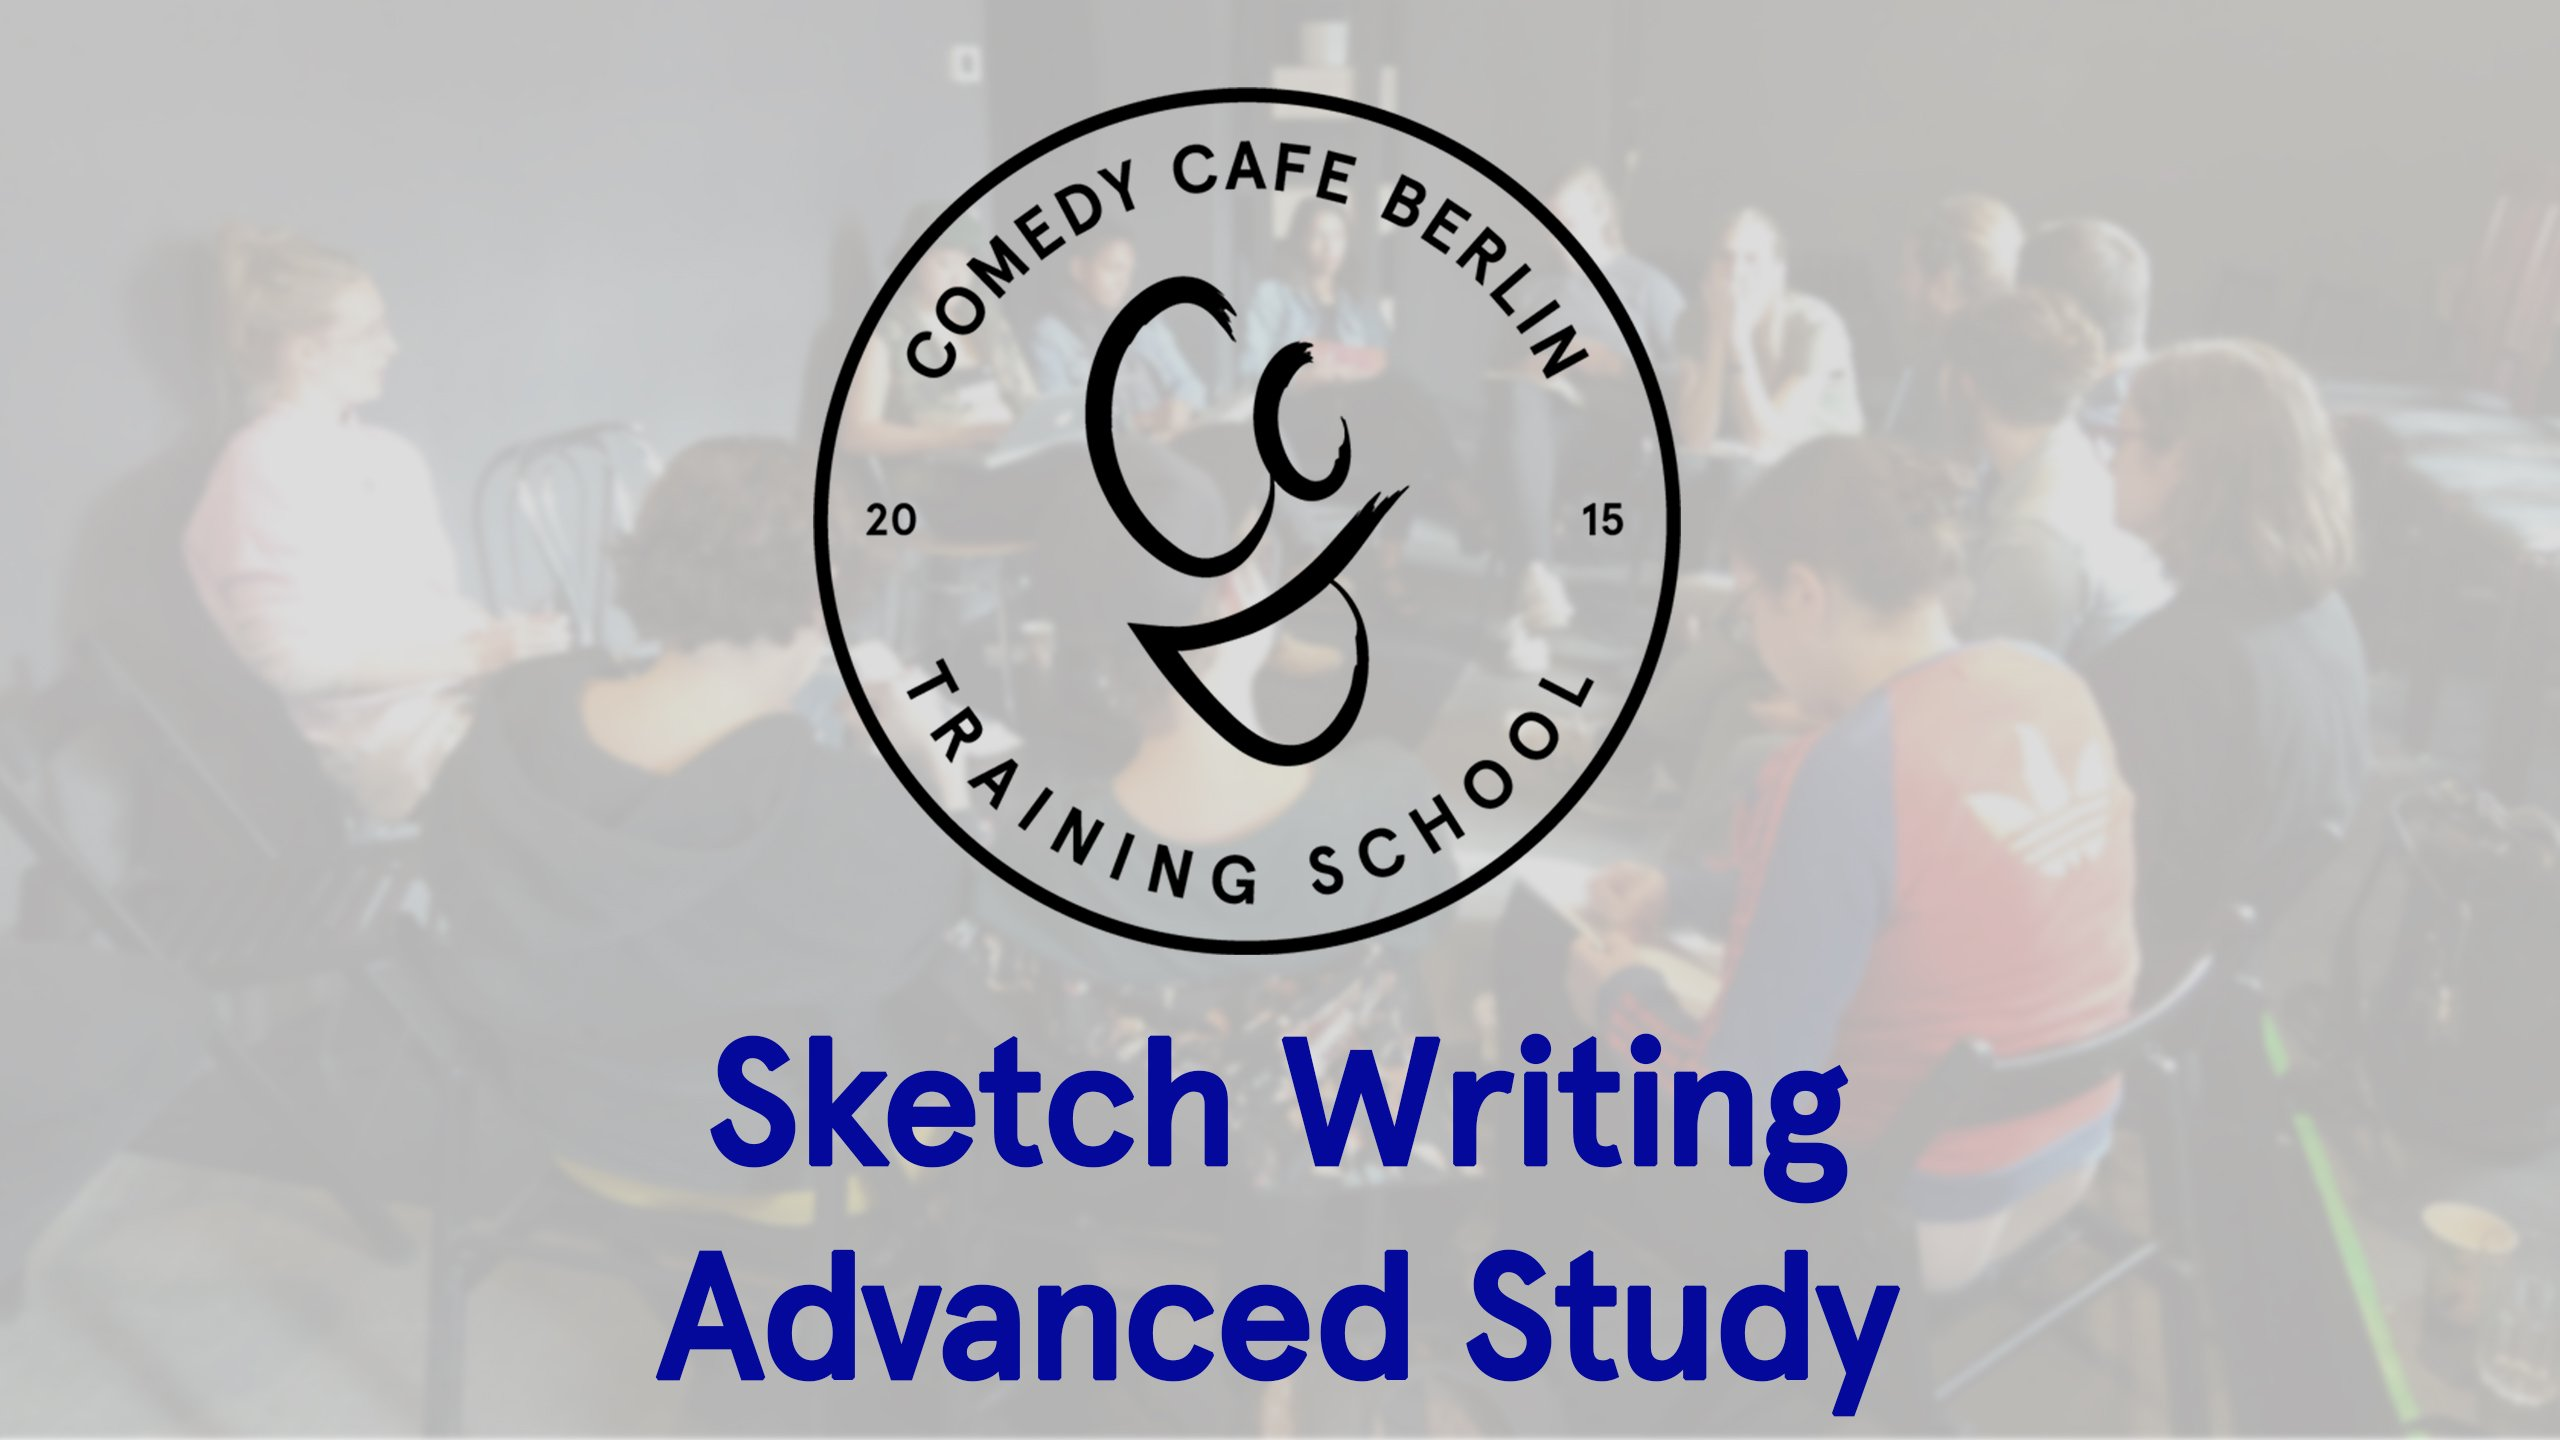 Sketch Writing Advanced Study